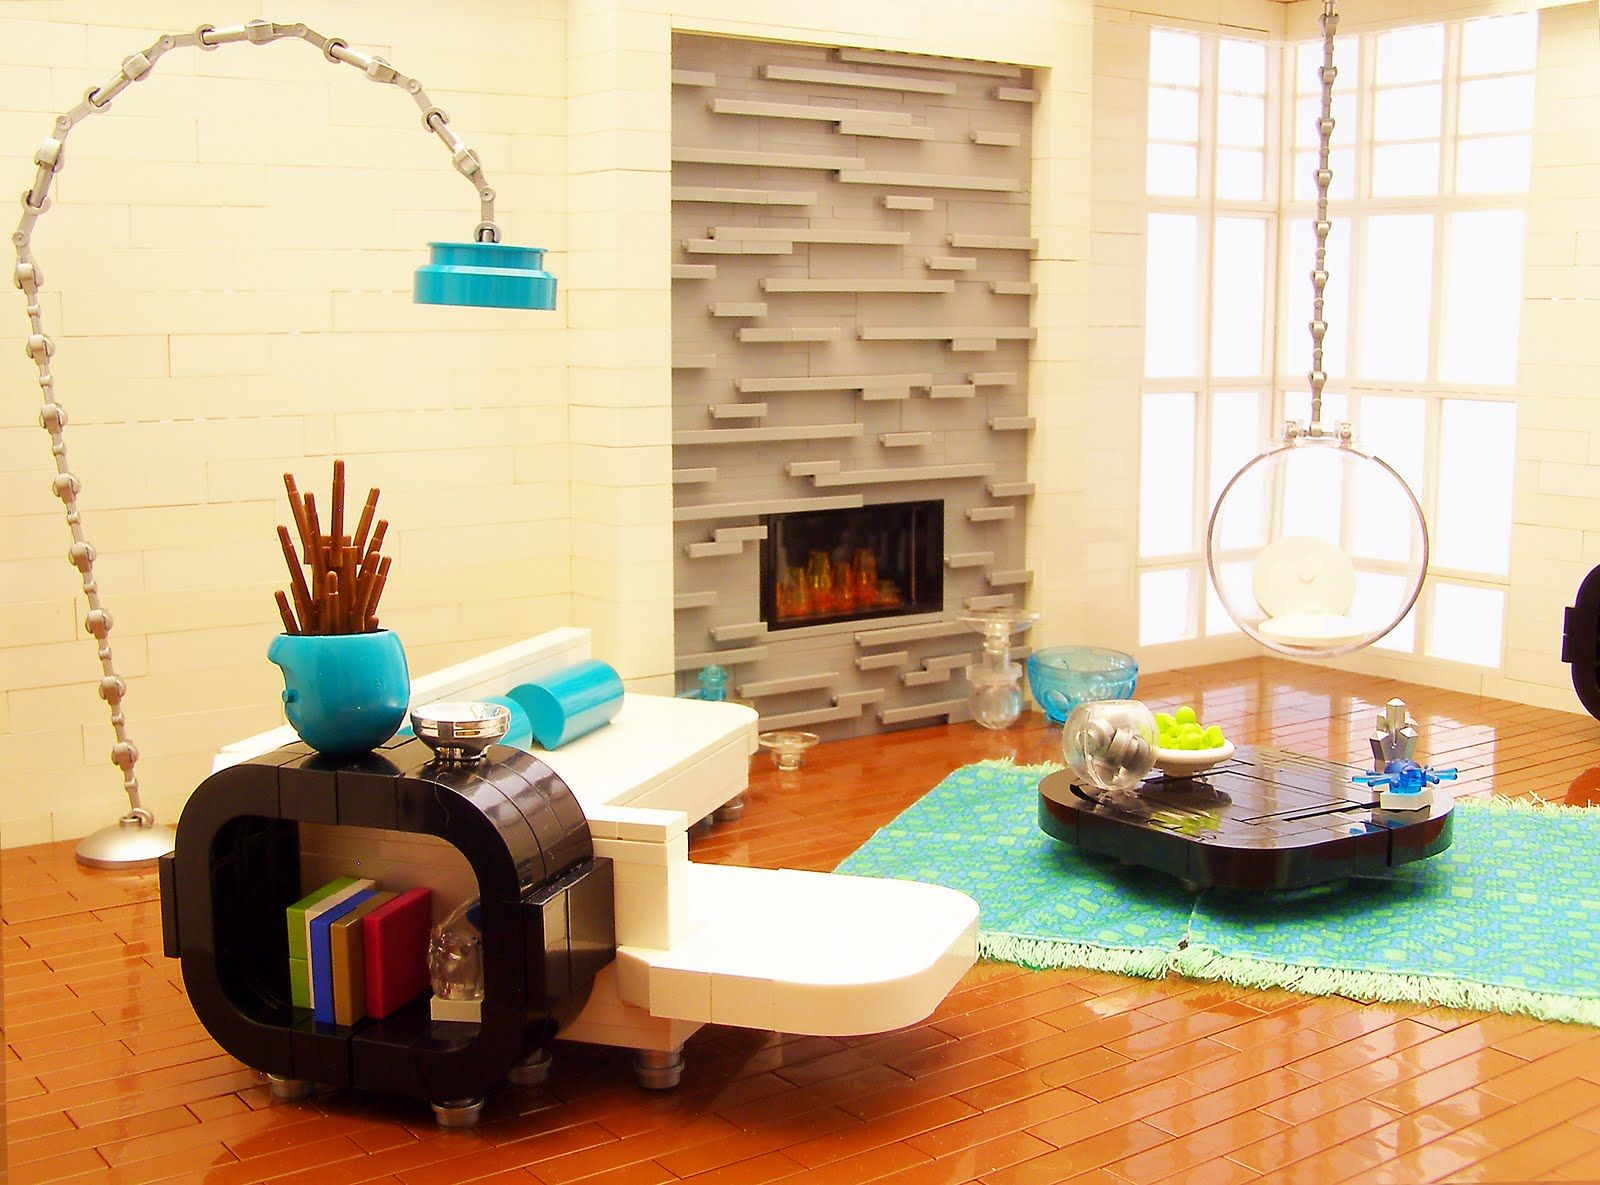 Lego moc really modern apartment with really cool furniture side view  LEGO  Lego furniture